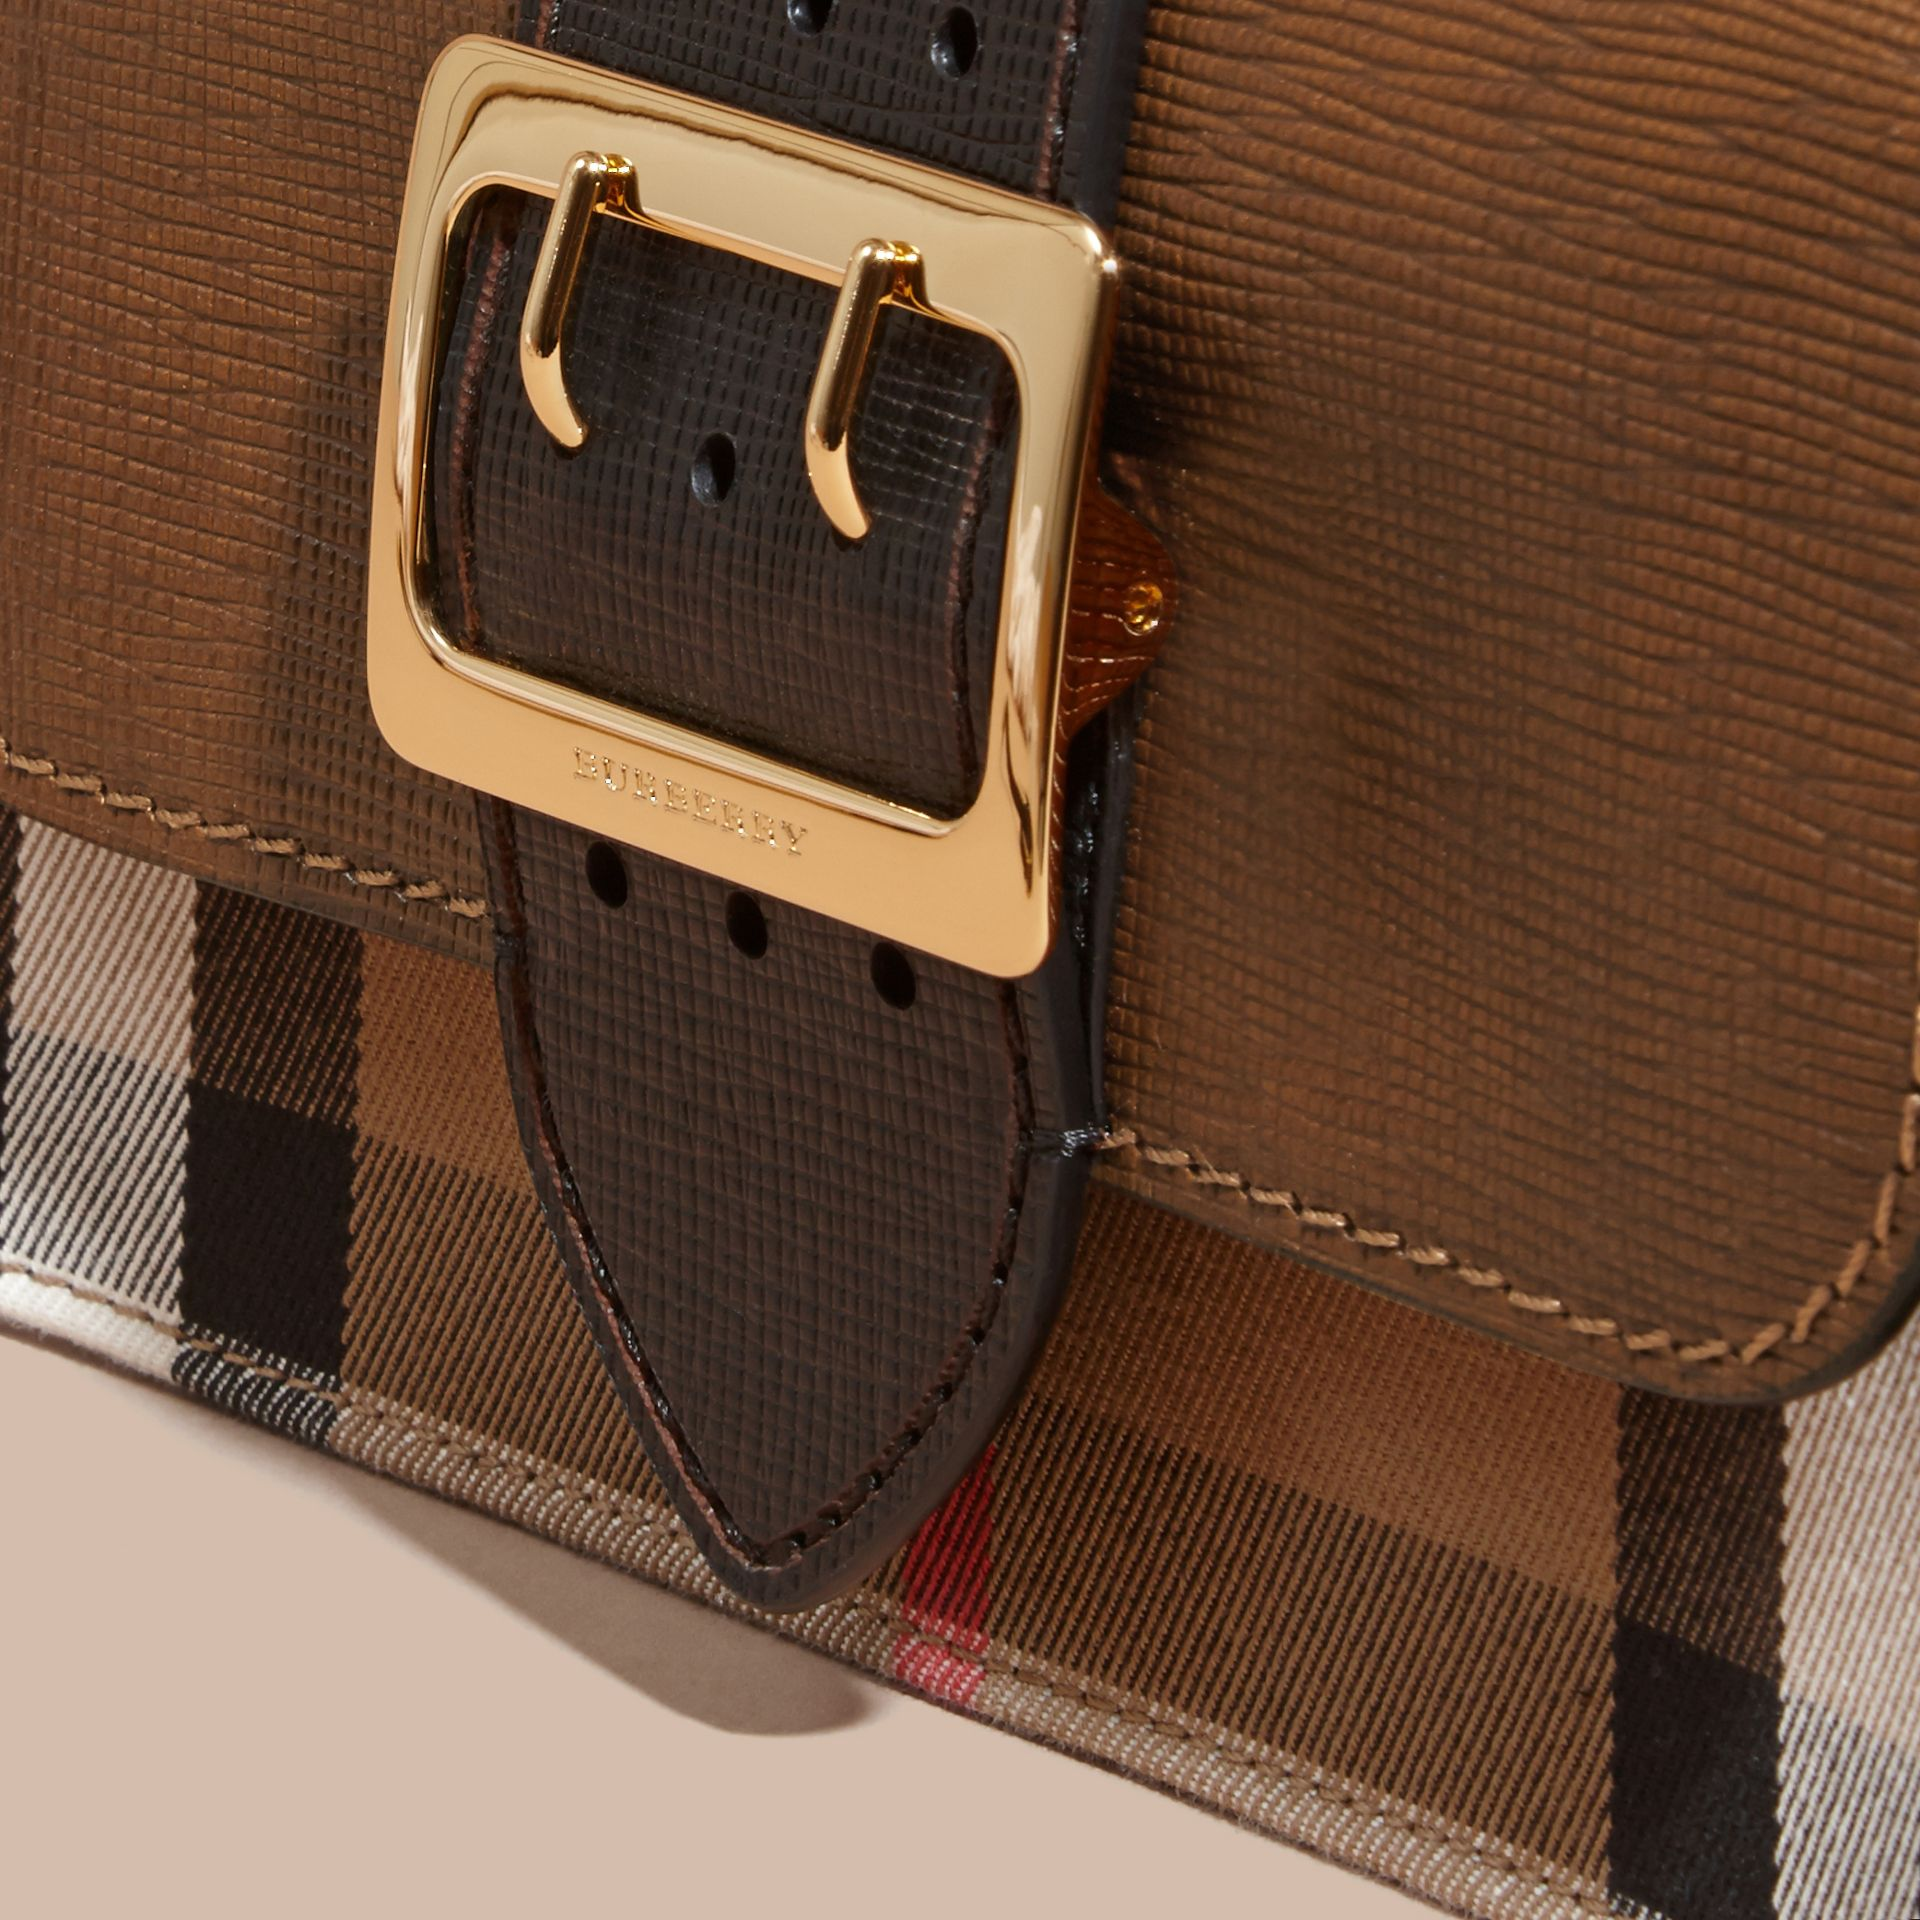 Tan/black The Medium Buckle Bag in House Check and Textured Leather Tan/black - gallery image 2